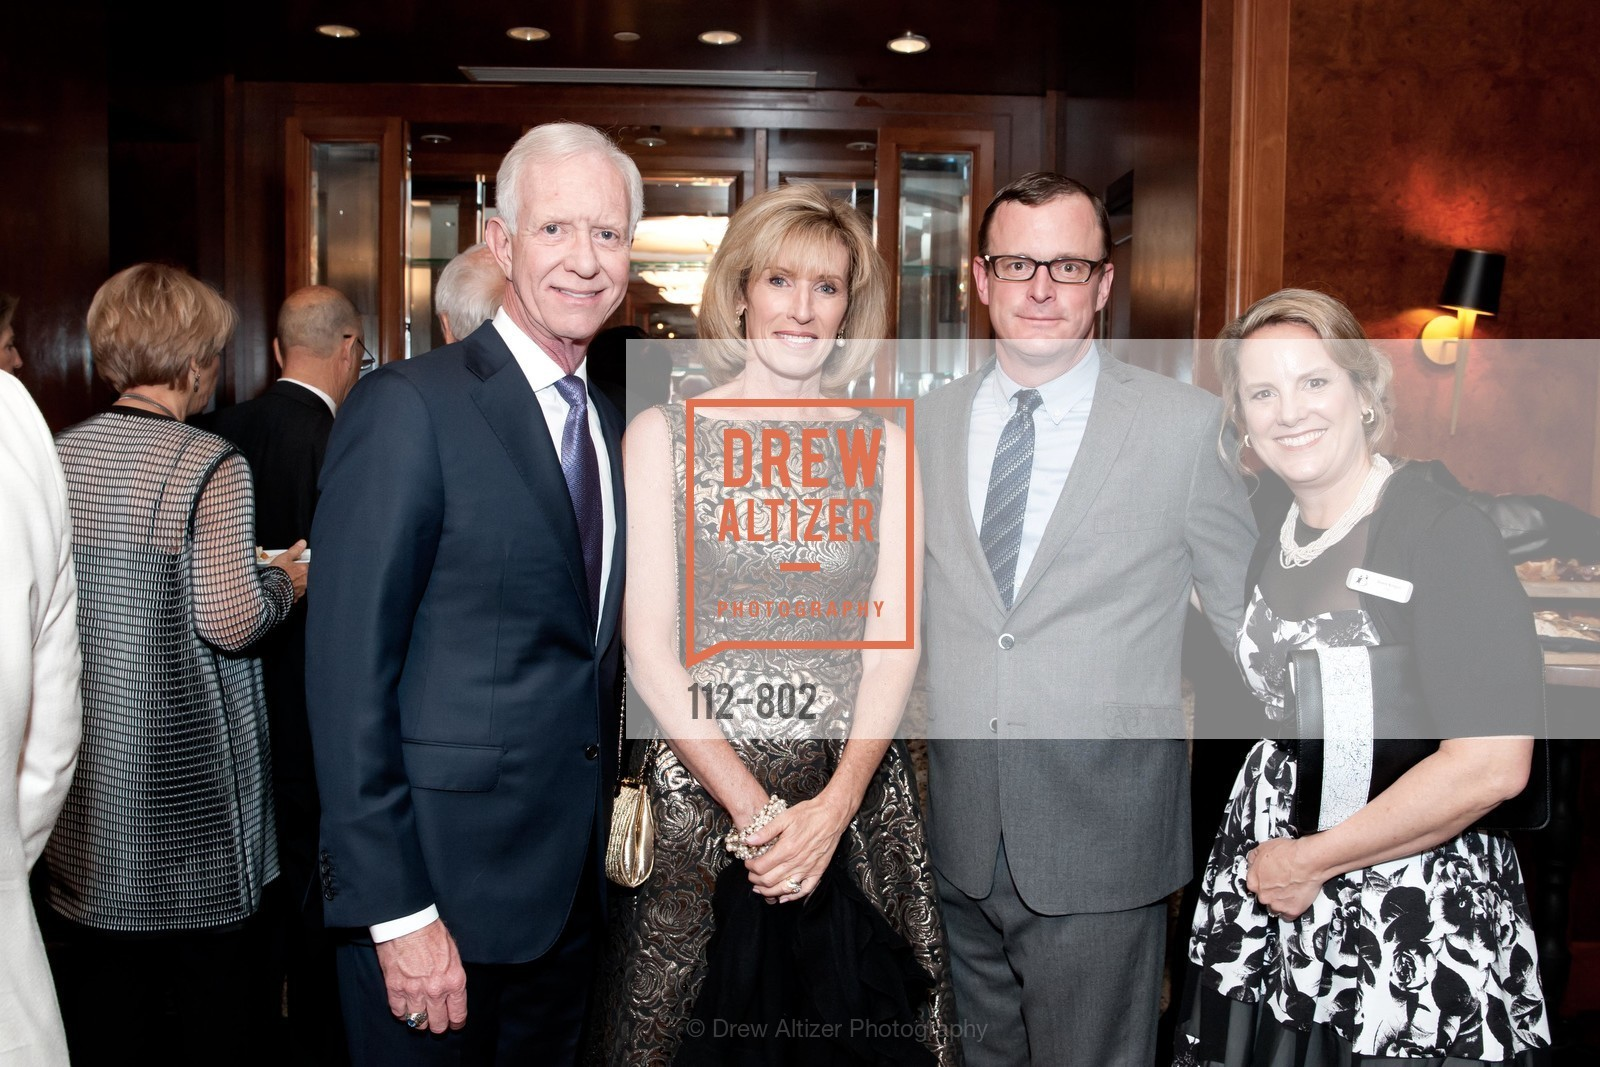 Sully Sullenberger, Lorrie Sullenberger, Dawn Kruger, MR PORTER Celebrate The San Francisco Issue of The Journal, US, April 23rd, 2015,Drew Altizer, Drew Altizer Photography, full-service agency, private events, San Francisco photographer, photographer california